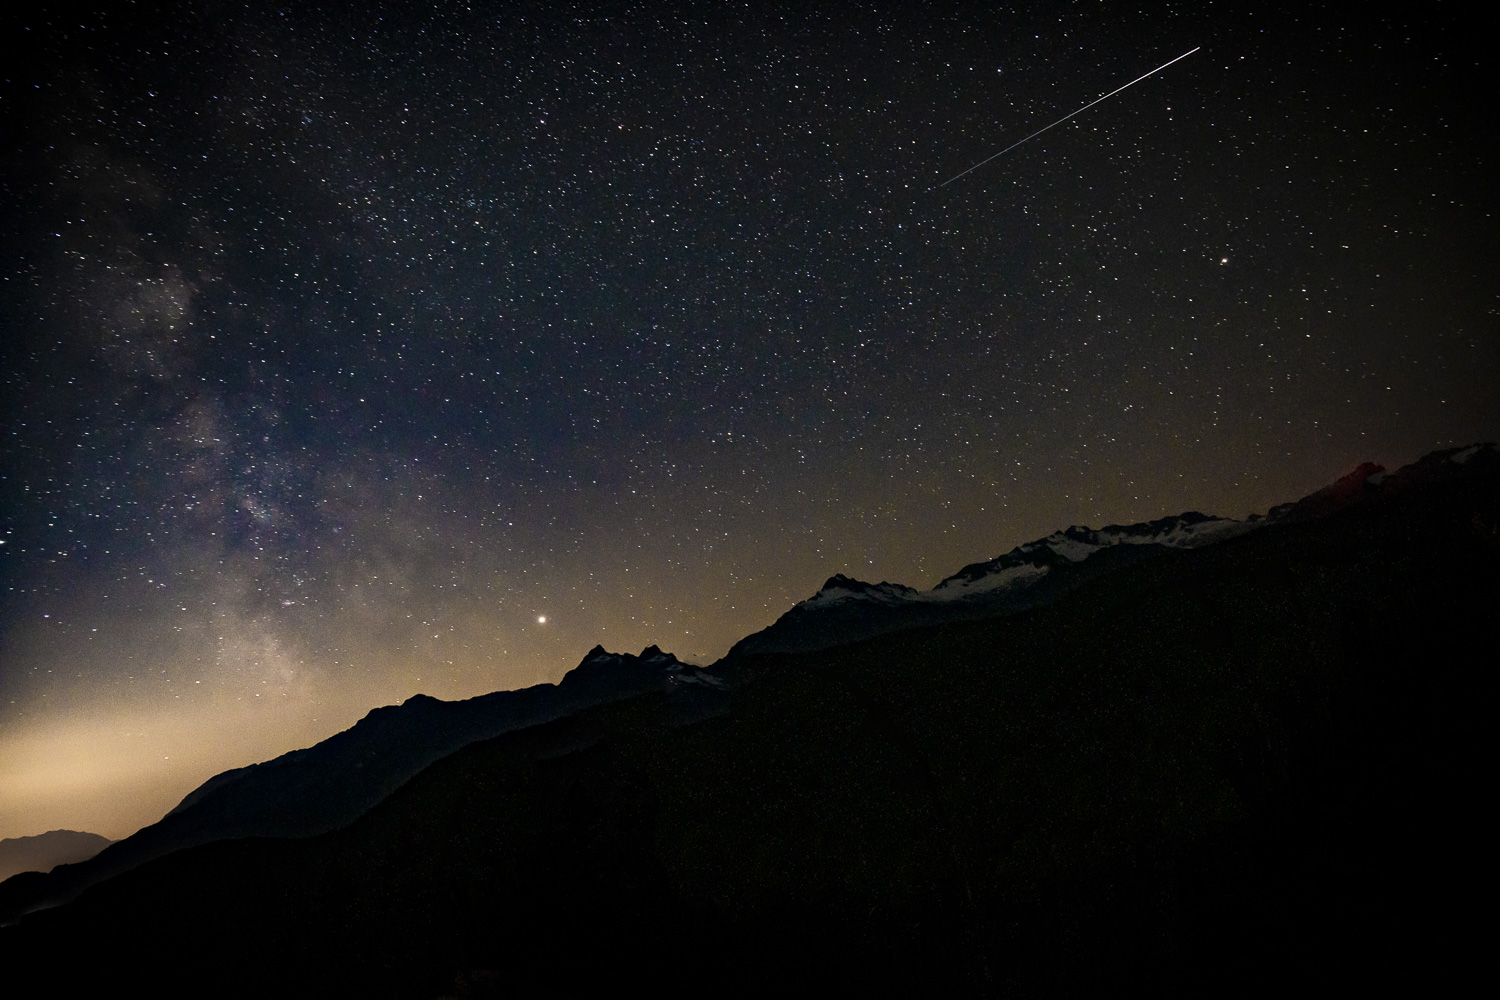 Milky Way and Perseid Meteor Shower from the Tantalus Lookout (003 of 3).jpg